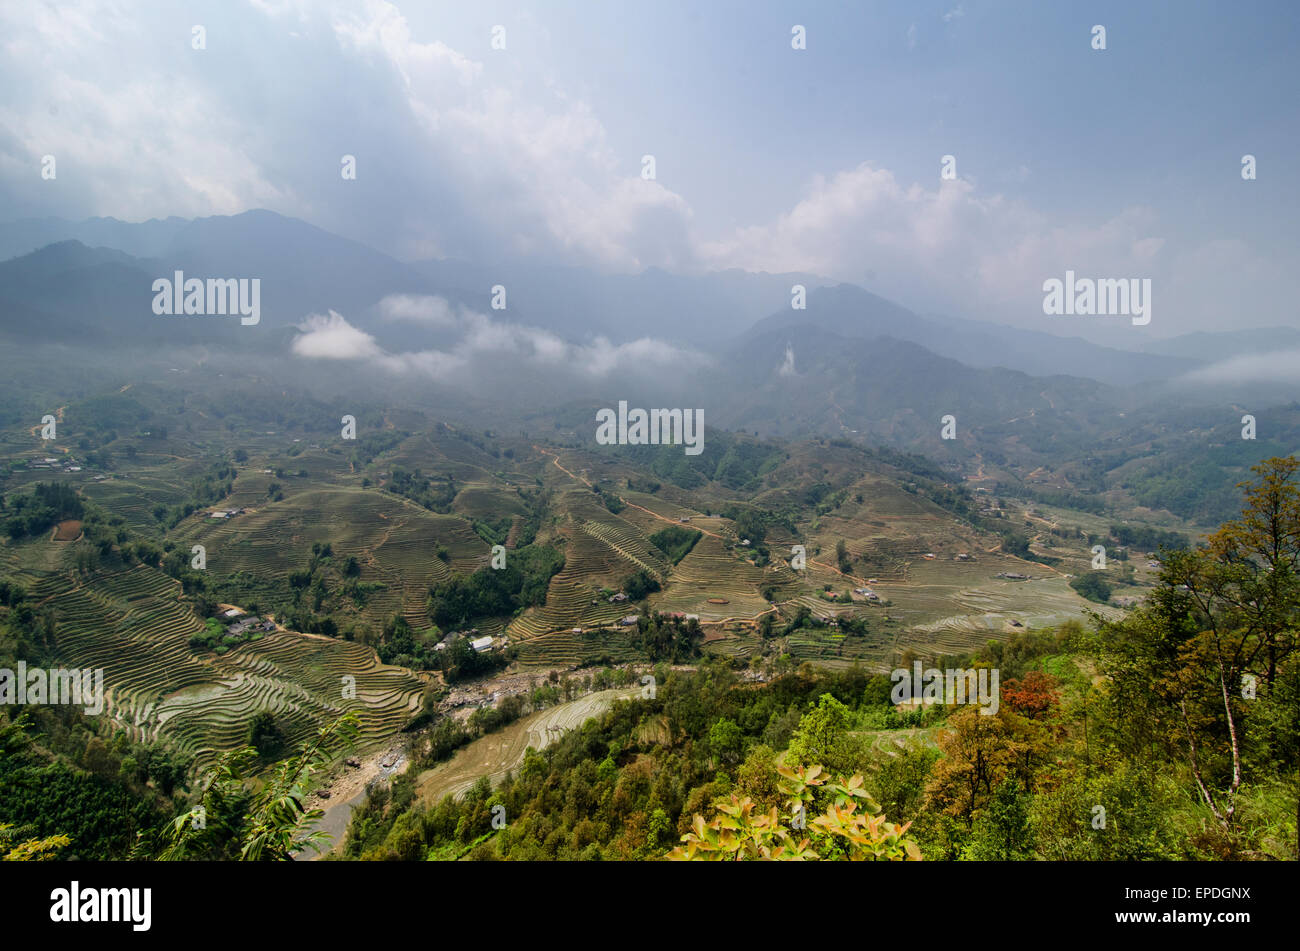 A valley view near Sapa, Vietnam - Stock Image